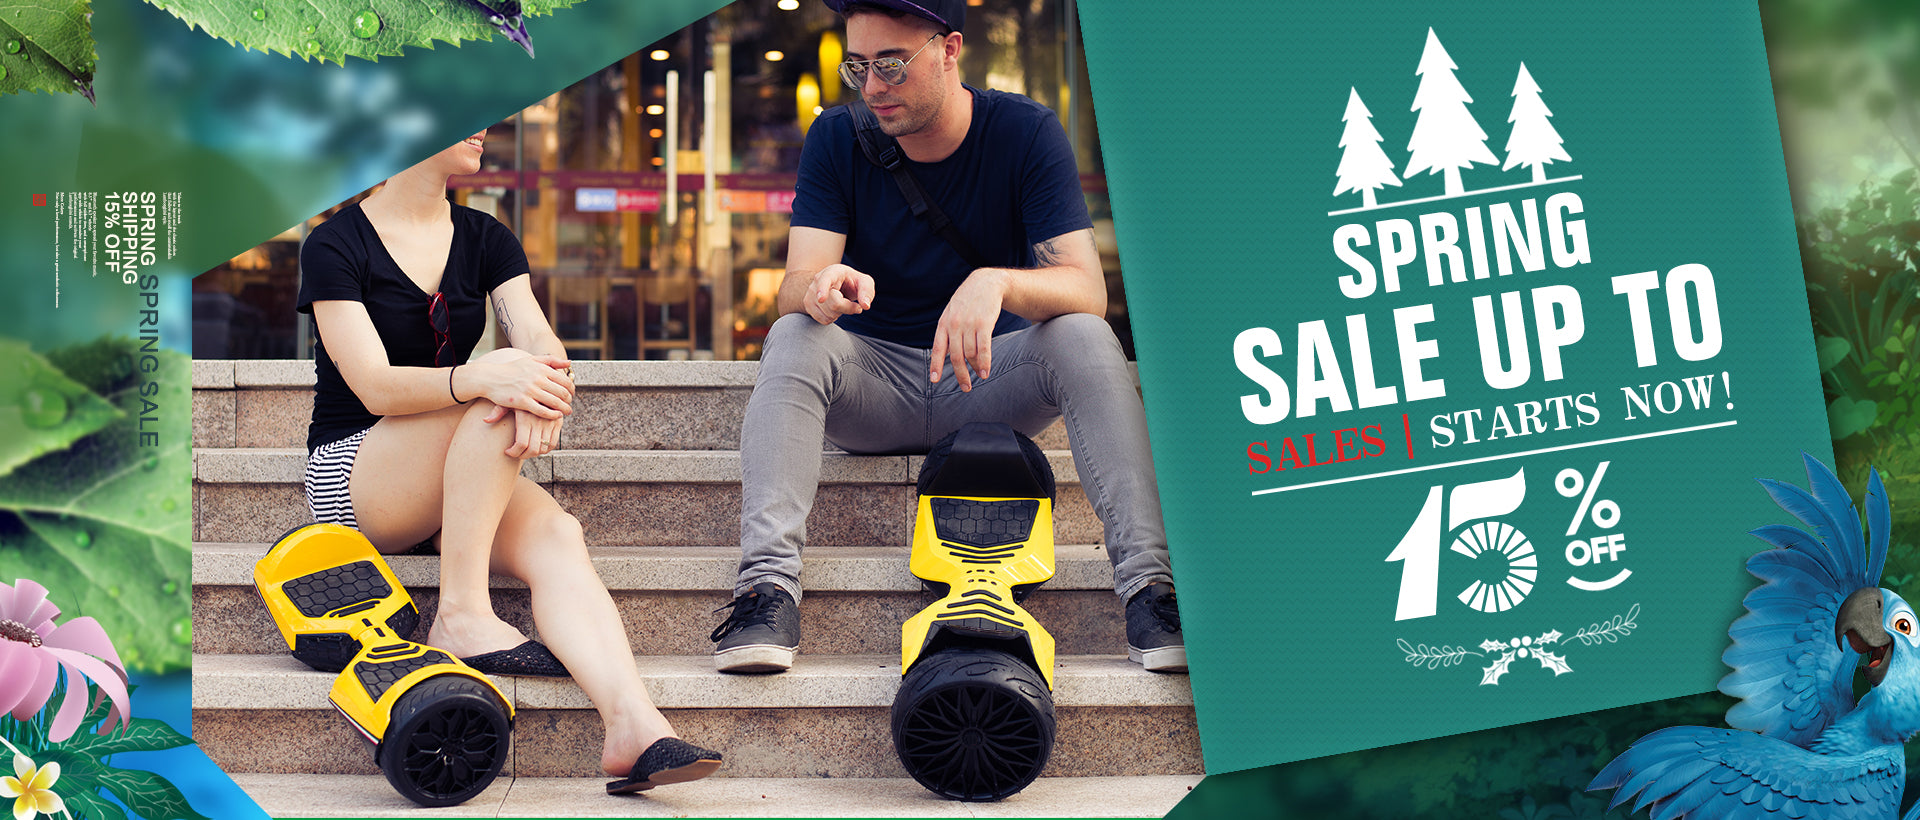 Lamborghini hoverboard - Spring Sale - Up to 15% off